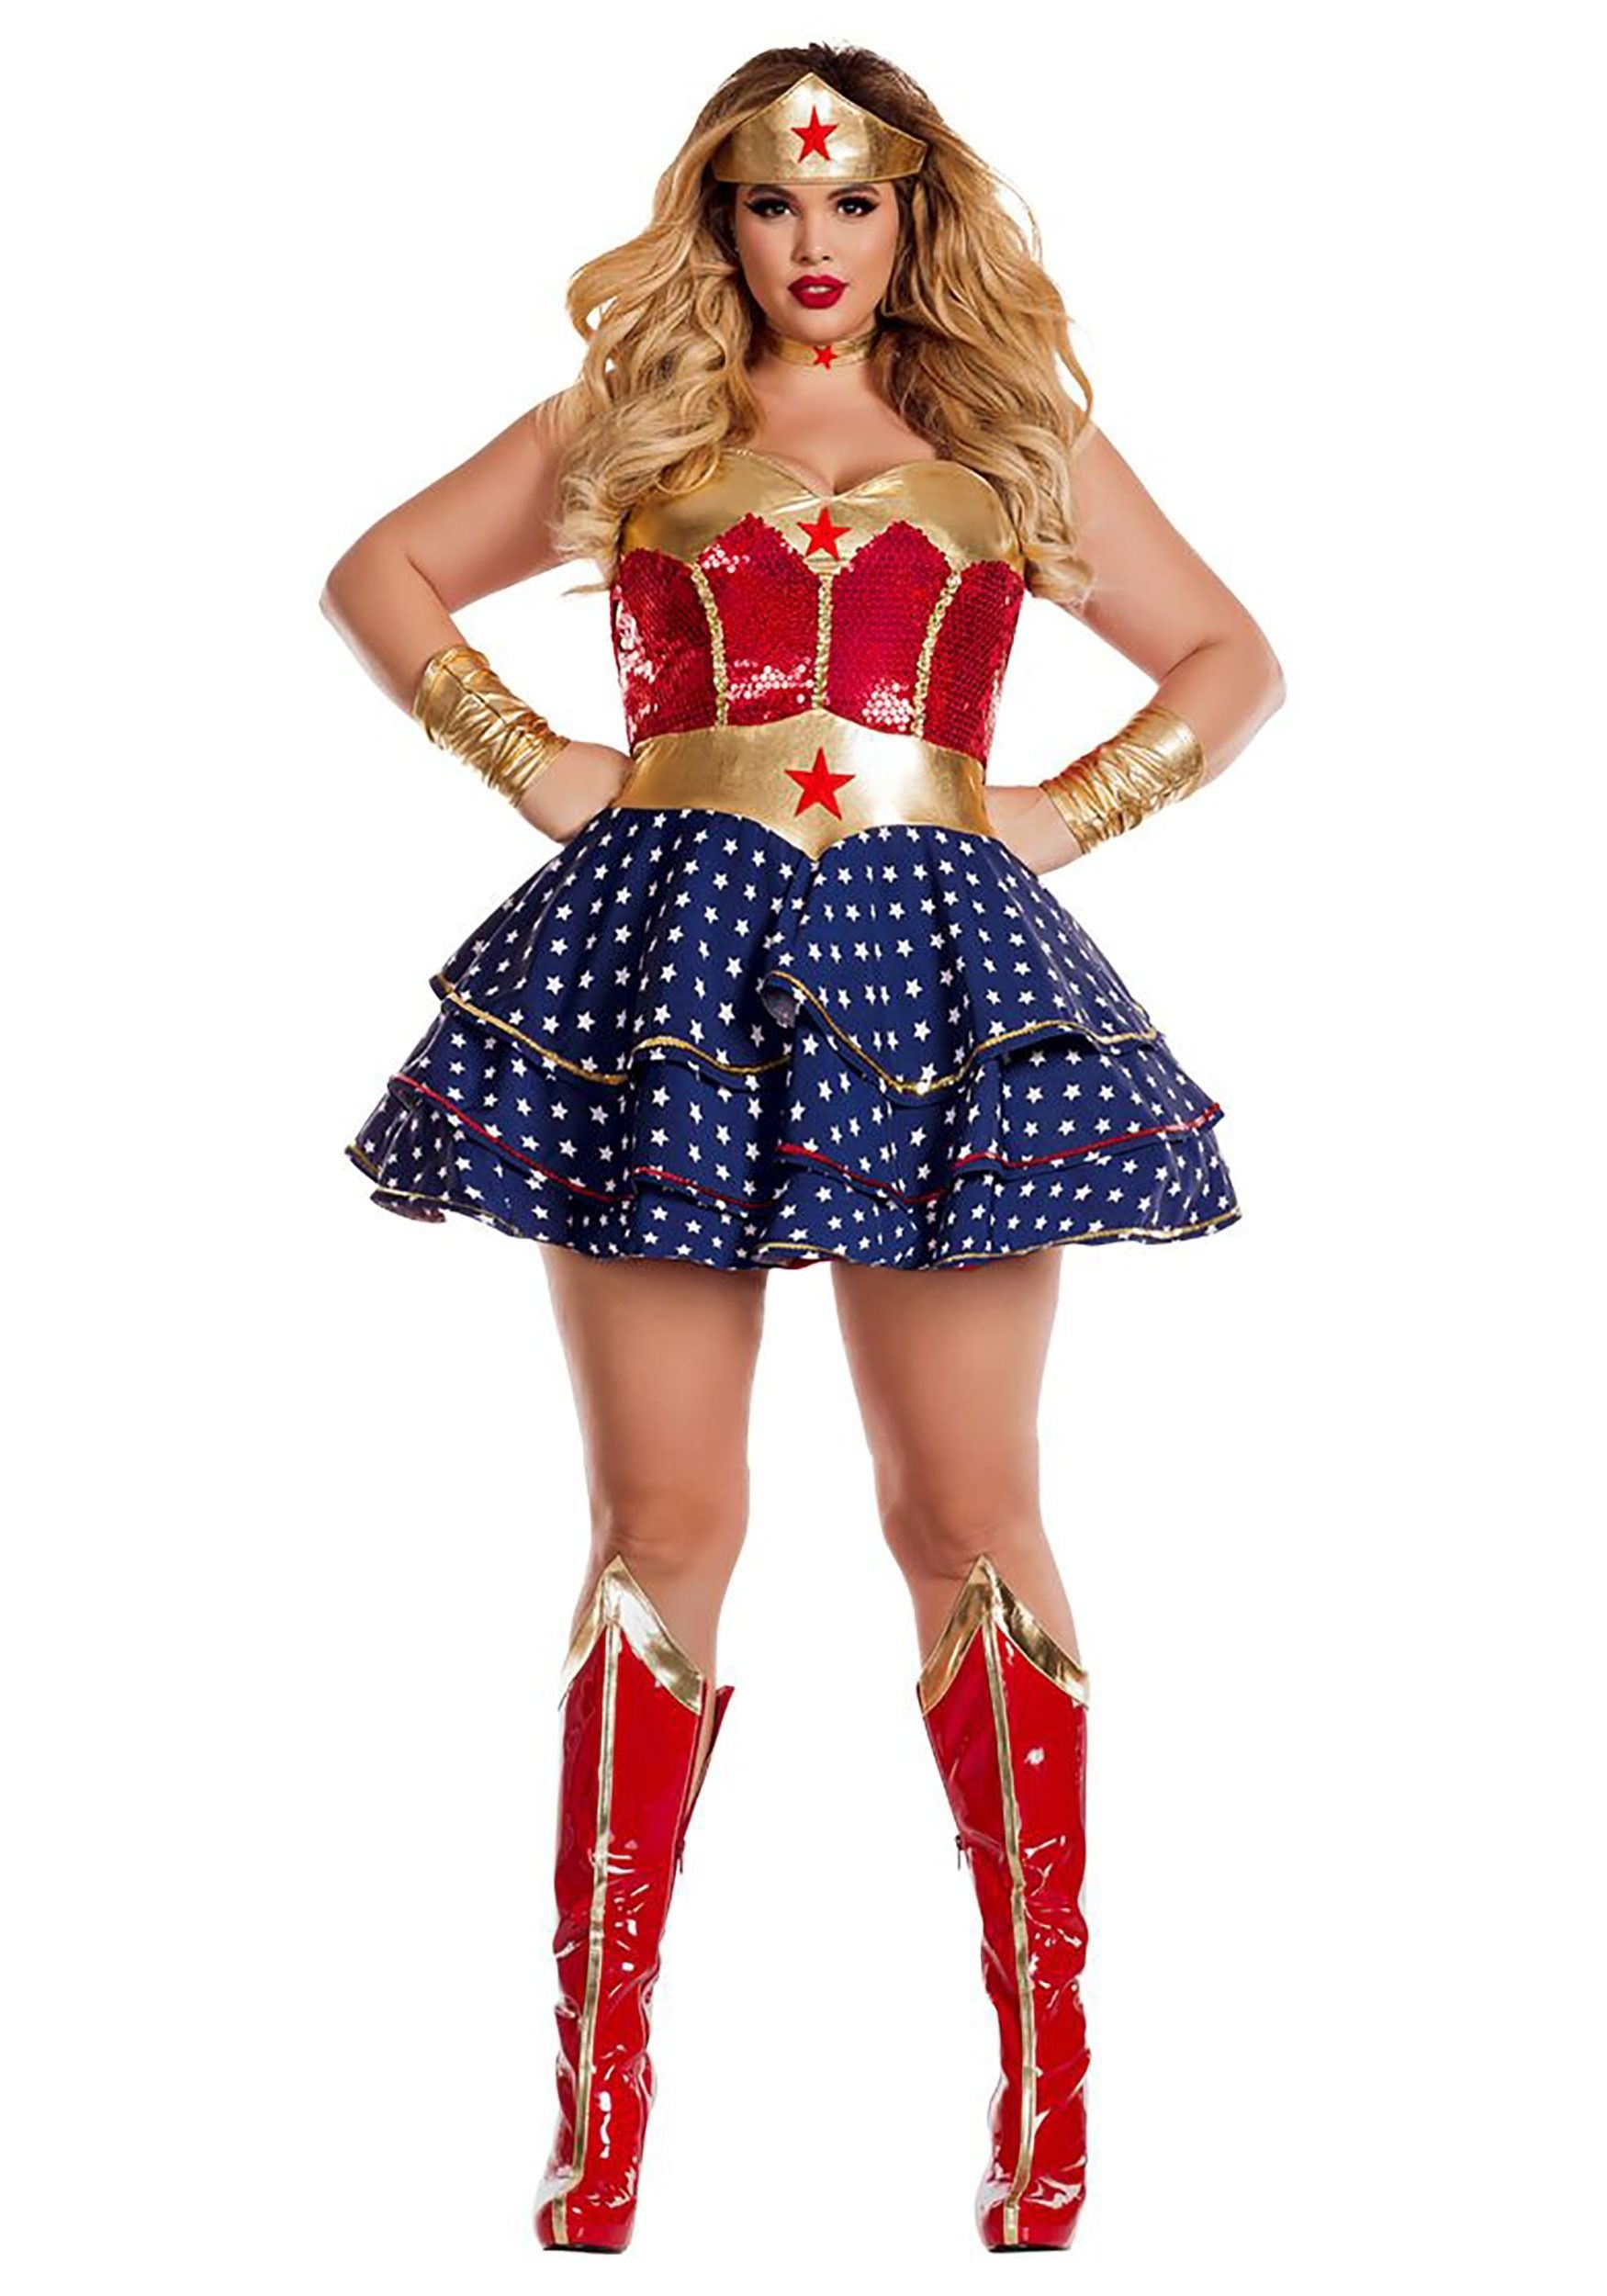 bb59649d28f 26 of Our Favorite Plus Size Costumes to Score for Halloween ...